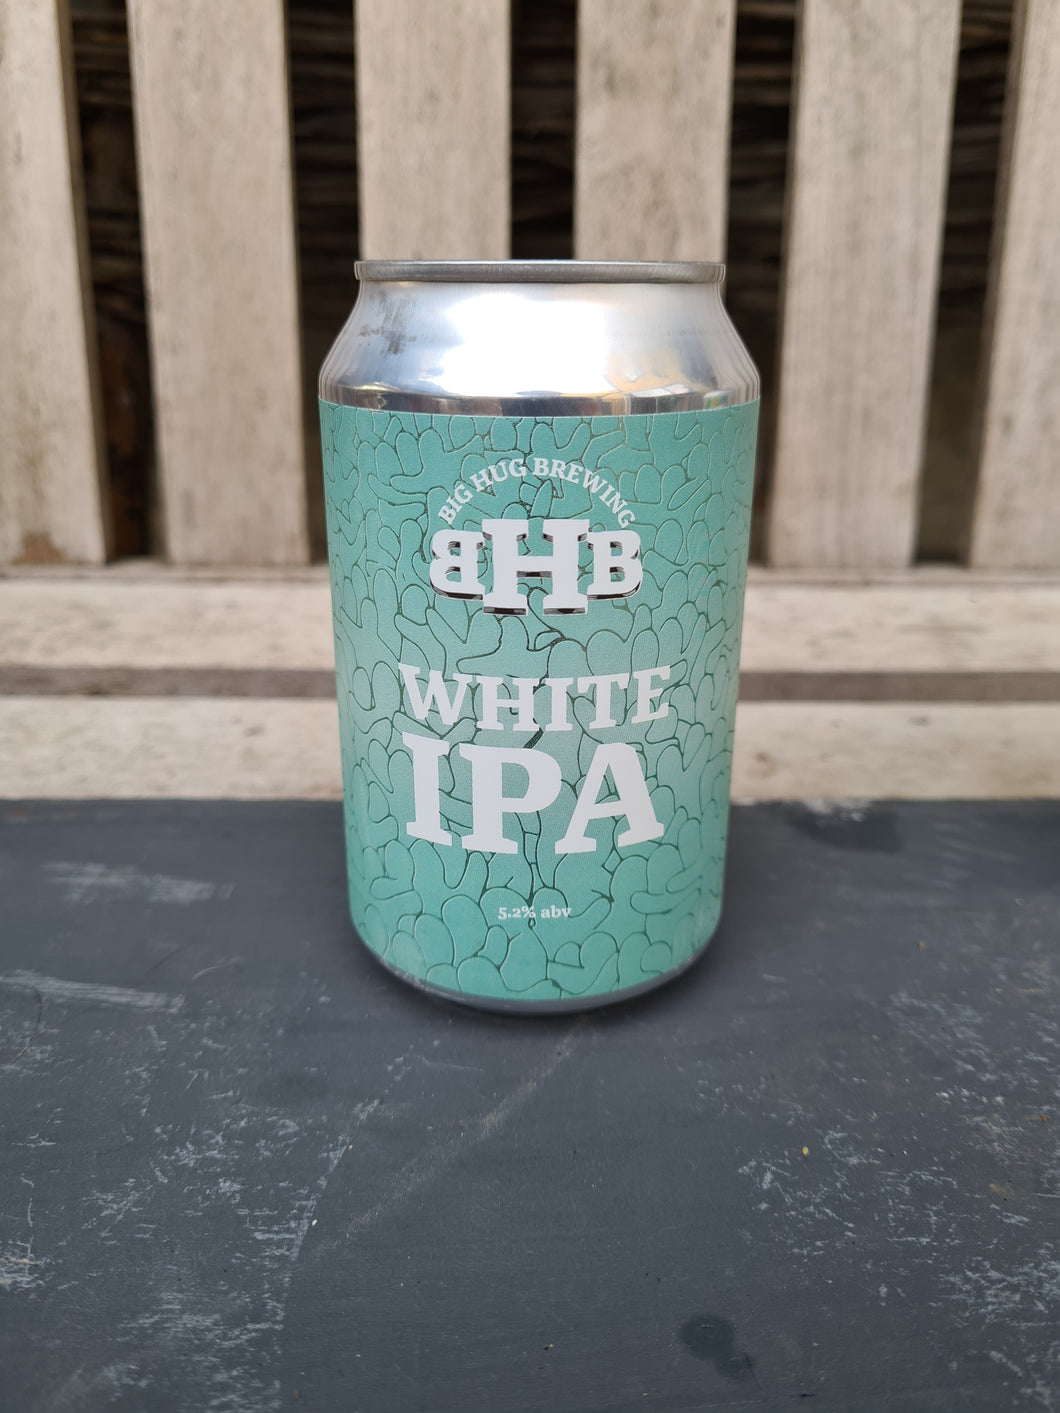 Big Hug - White IPA - 5.2% ABV (330ml)